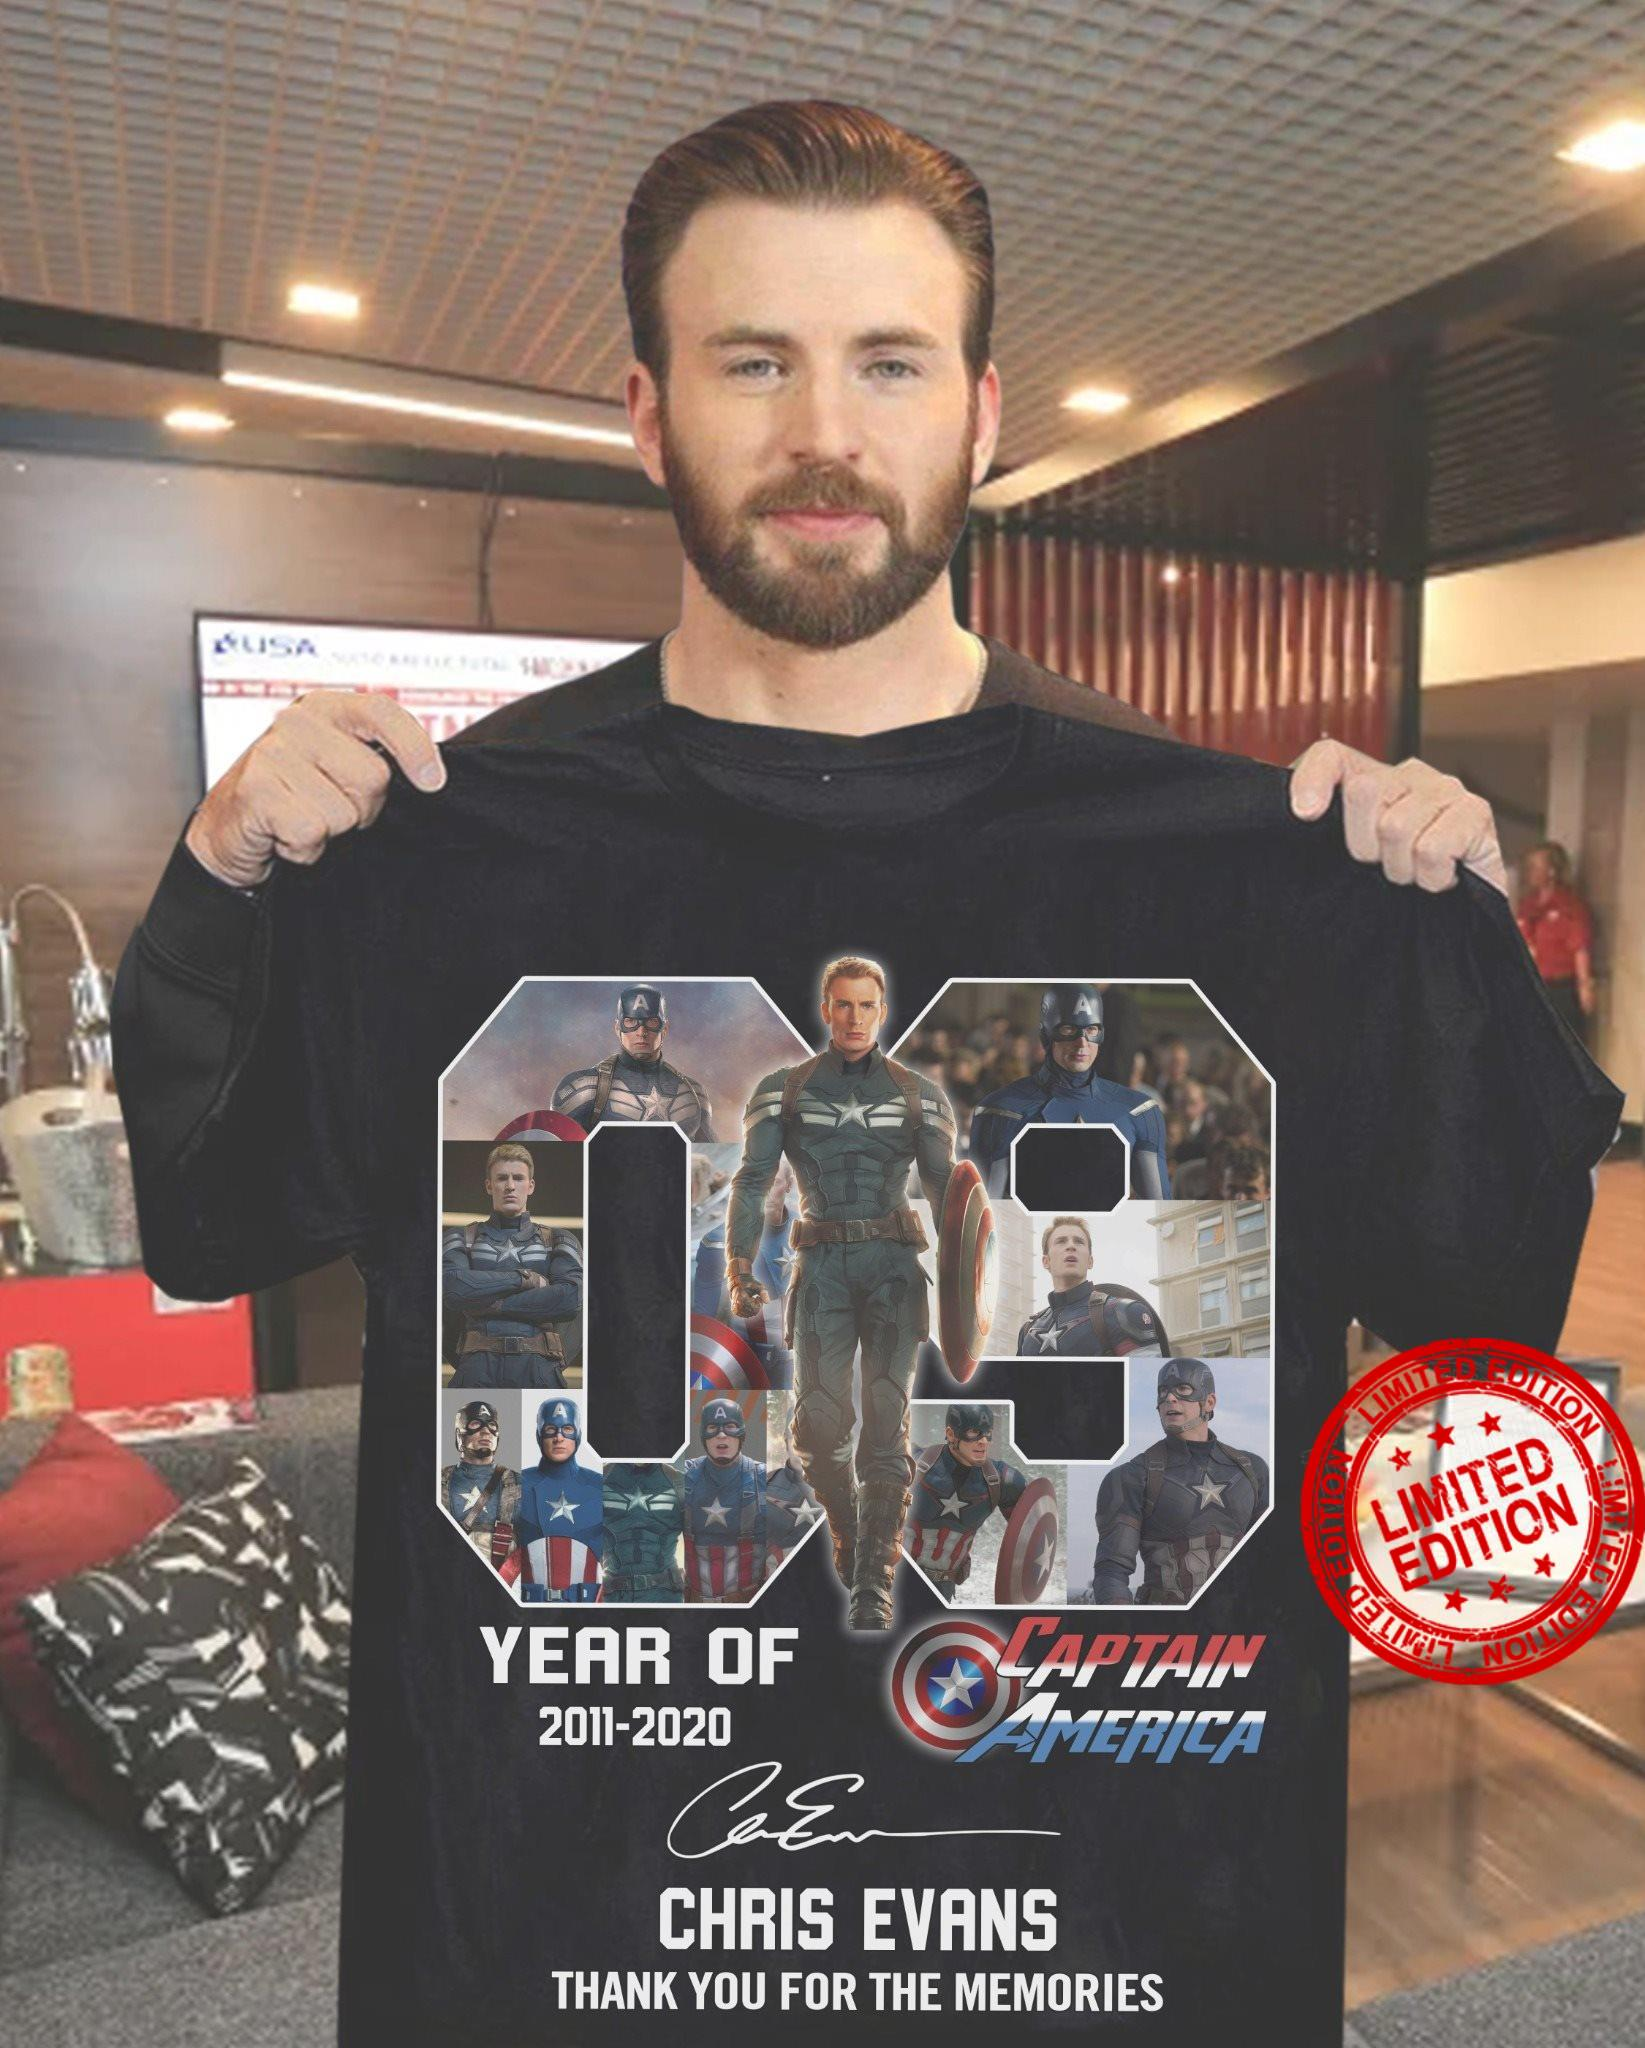 09 Year Of 2011-2020 Captain America Chris Evans Thank You For The Memories Shirt